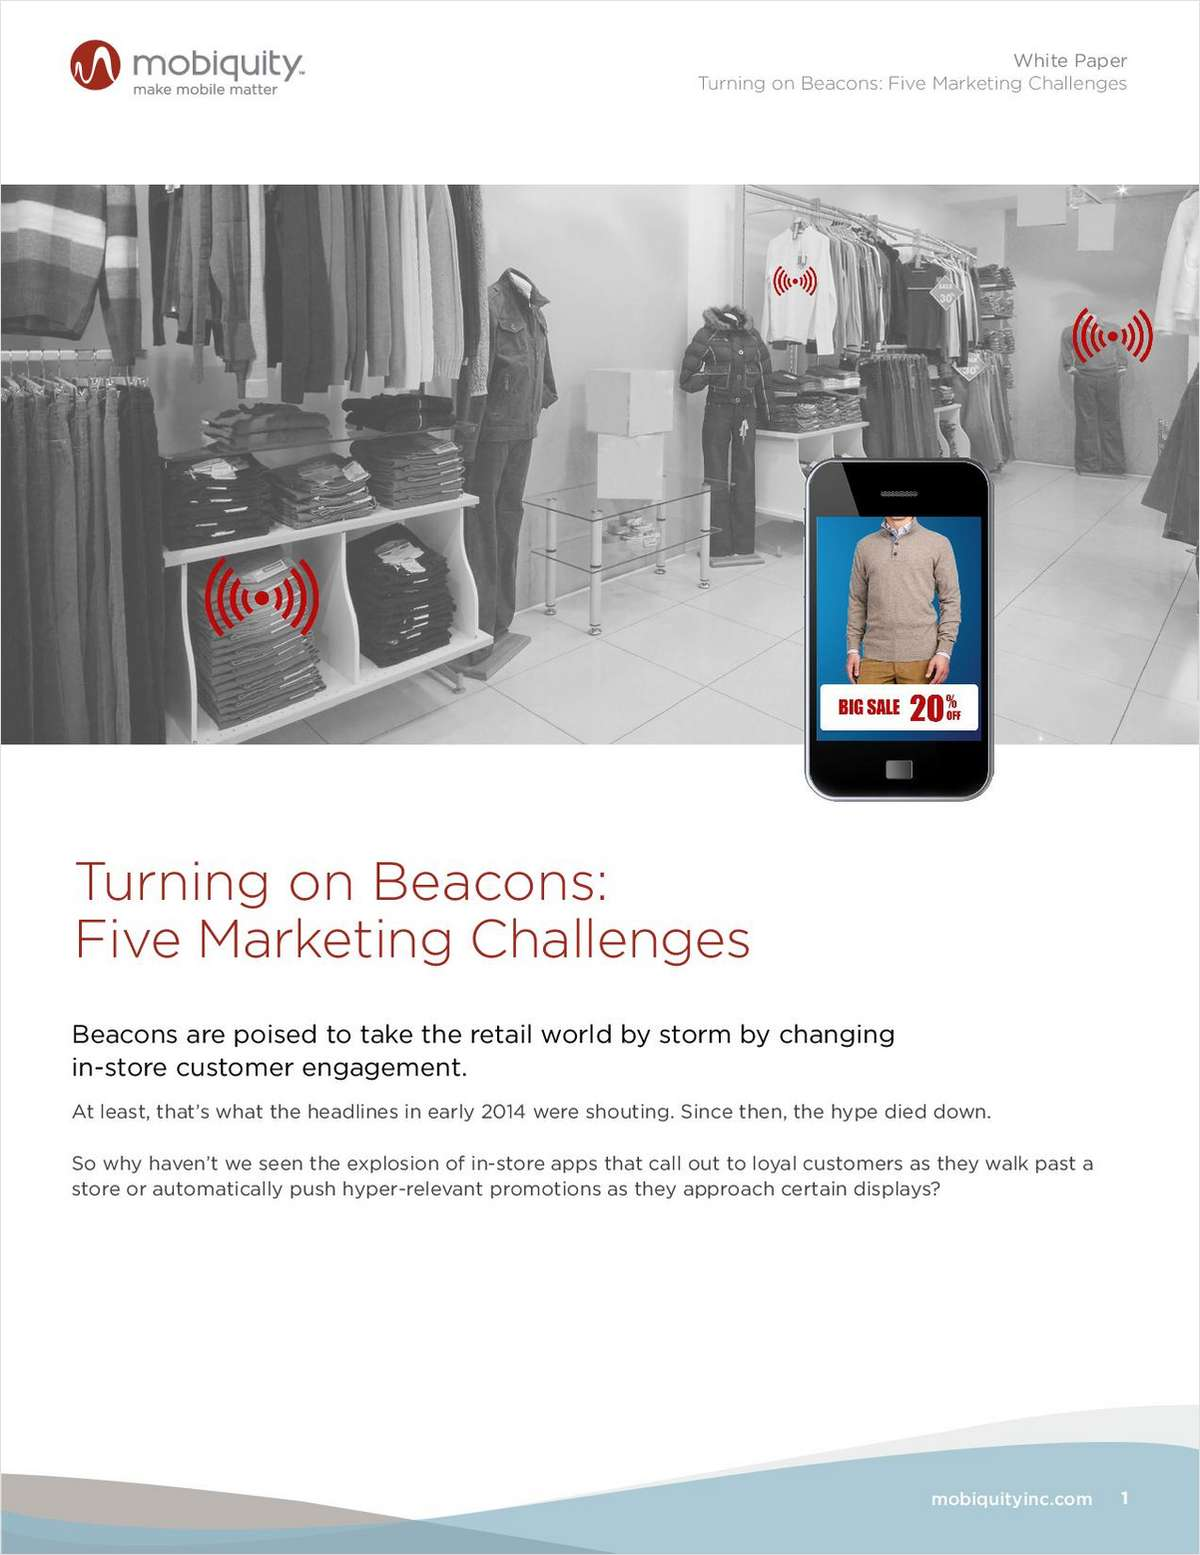 Turning on Beacons: 5 Marketing Challenges